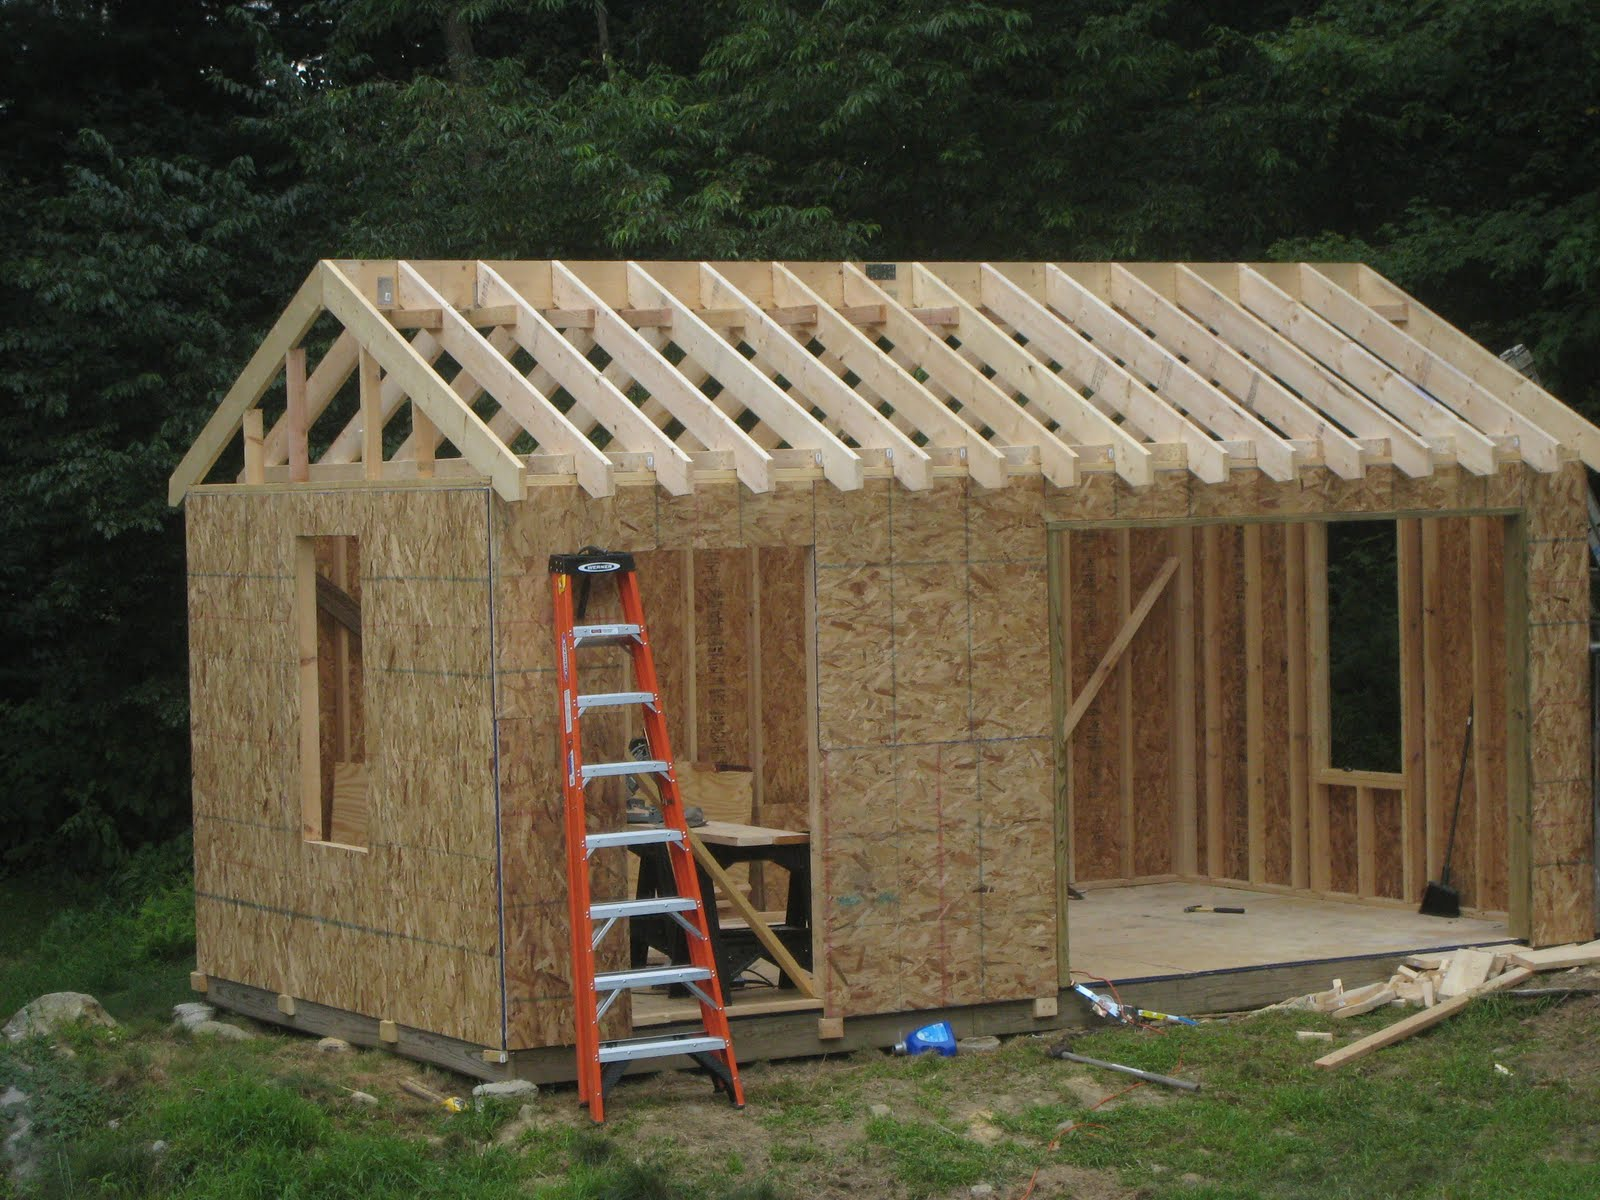 Build Cabin Plans With Loft Diy Pdf Wood Podium Plans Do: How To Build A Shed On Skids